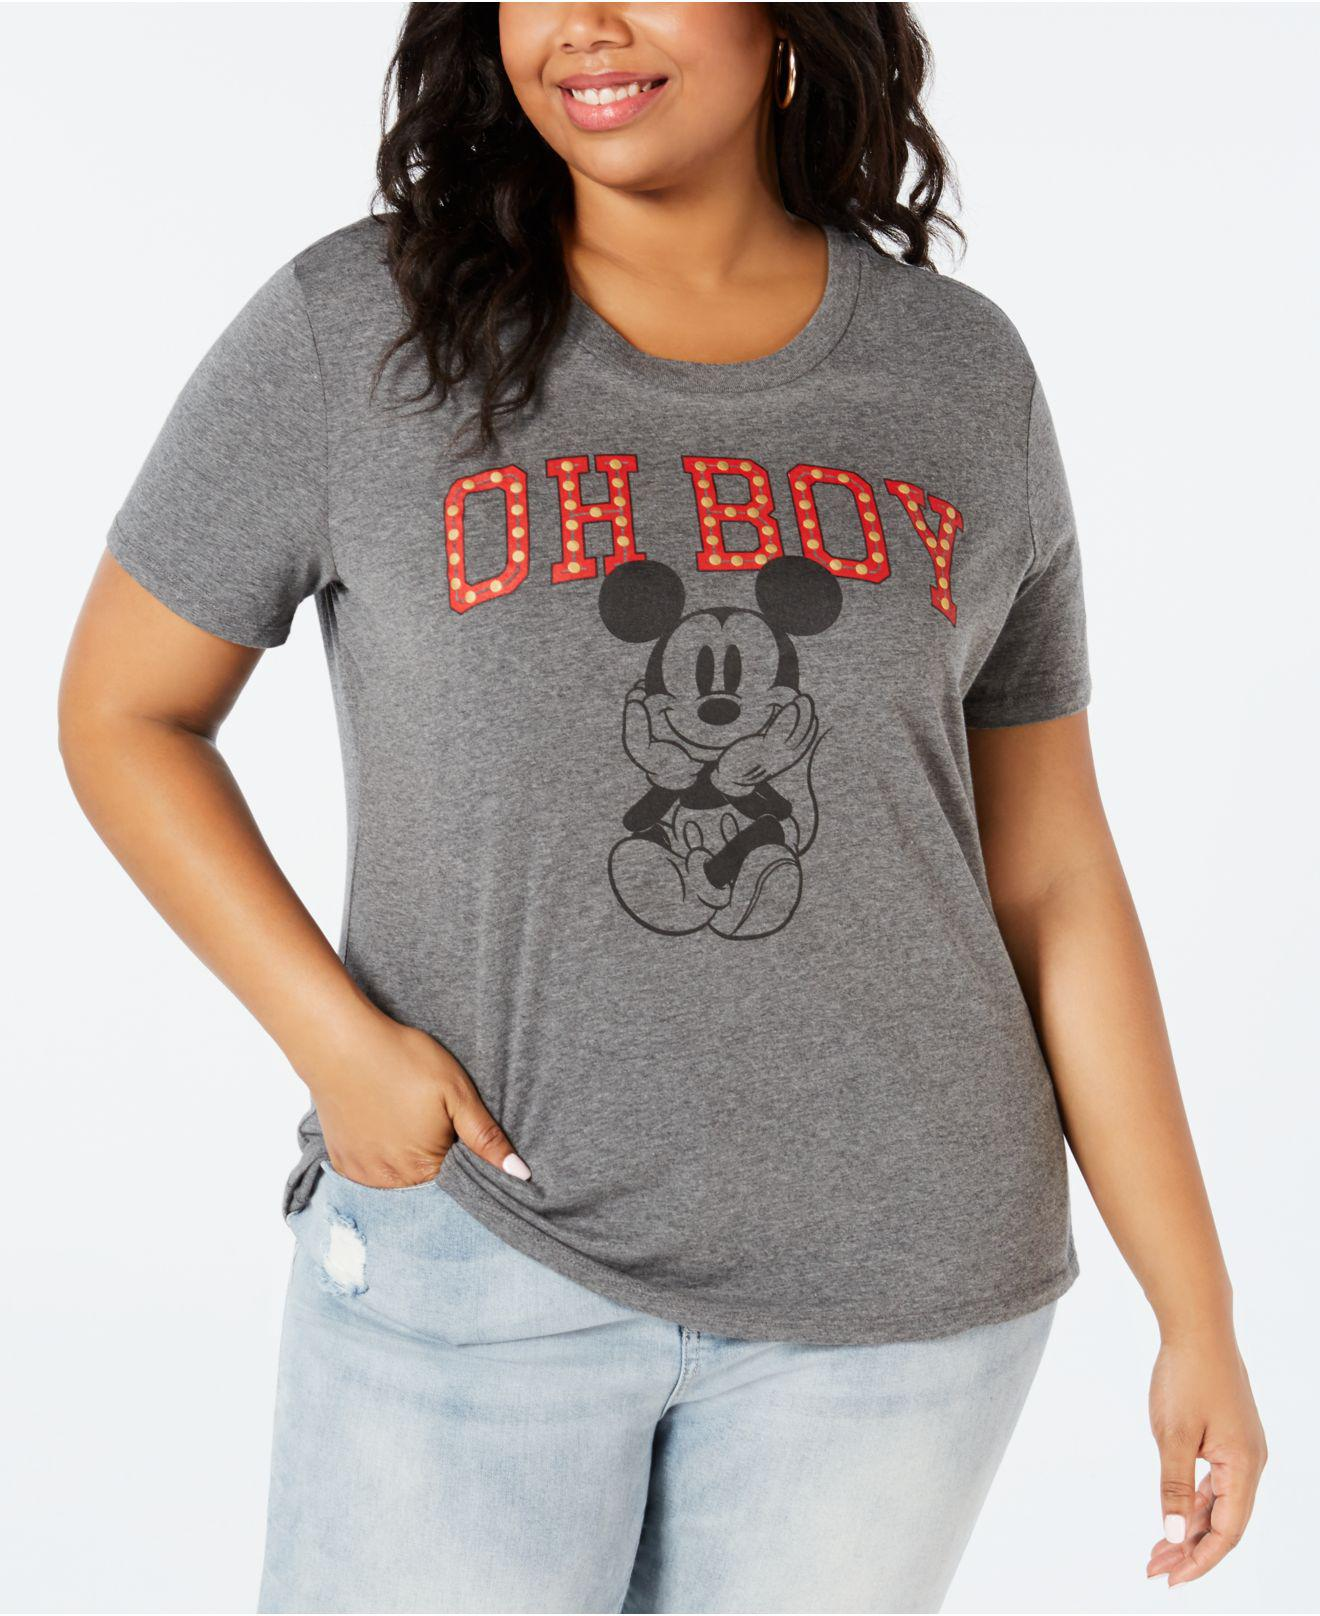 a7cdd536d06888 Disney By Love Tribe Trendy Plus Size Oh Boy Mickey Mouse T-shirt in ...